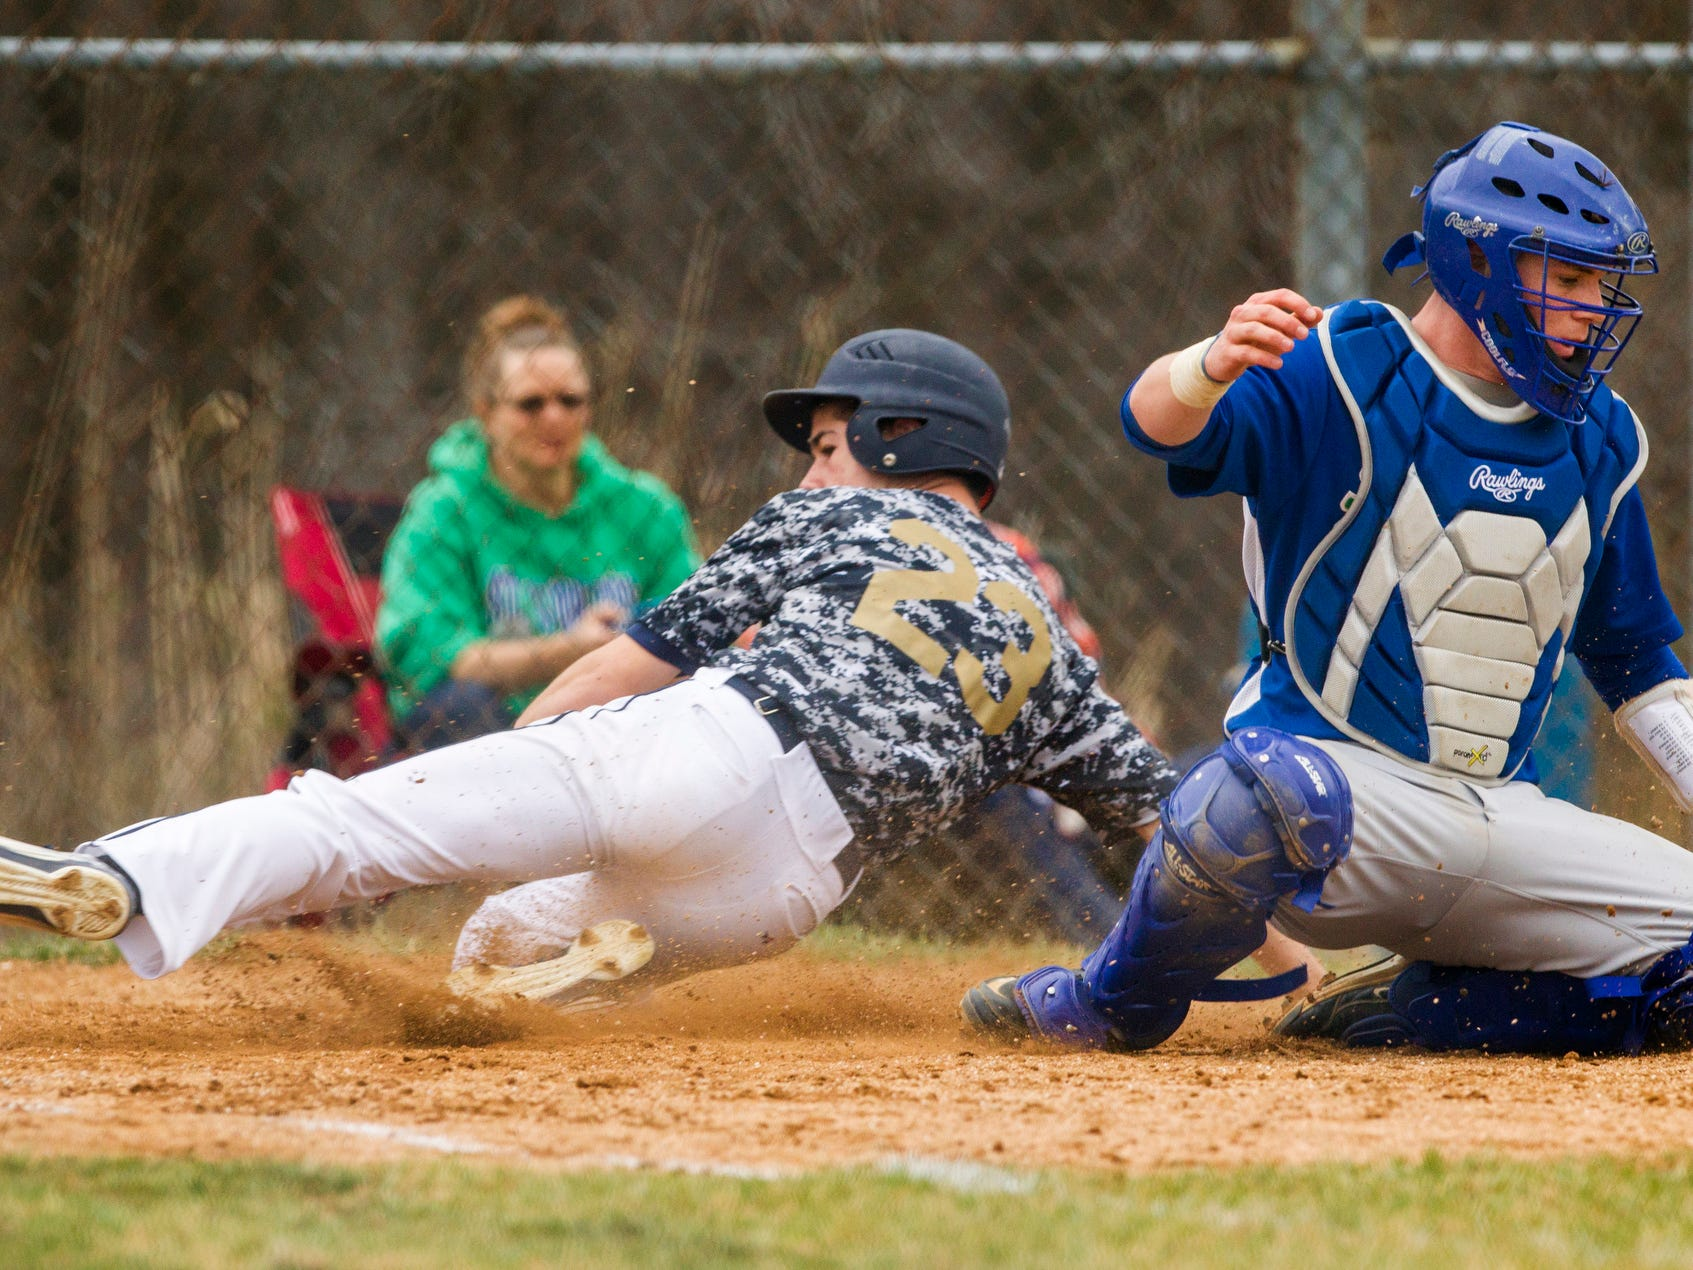 Delaware Military Academy's Shane Carney slides in safe at home plate to score DMA's first run of their a game against St. Georges at Newark National field on Tuesday afternoon.